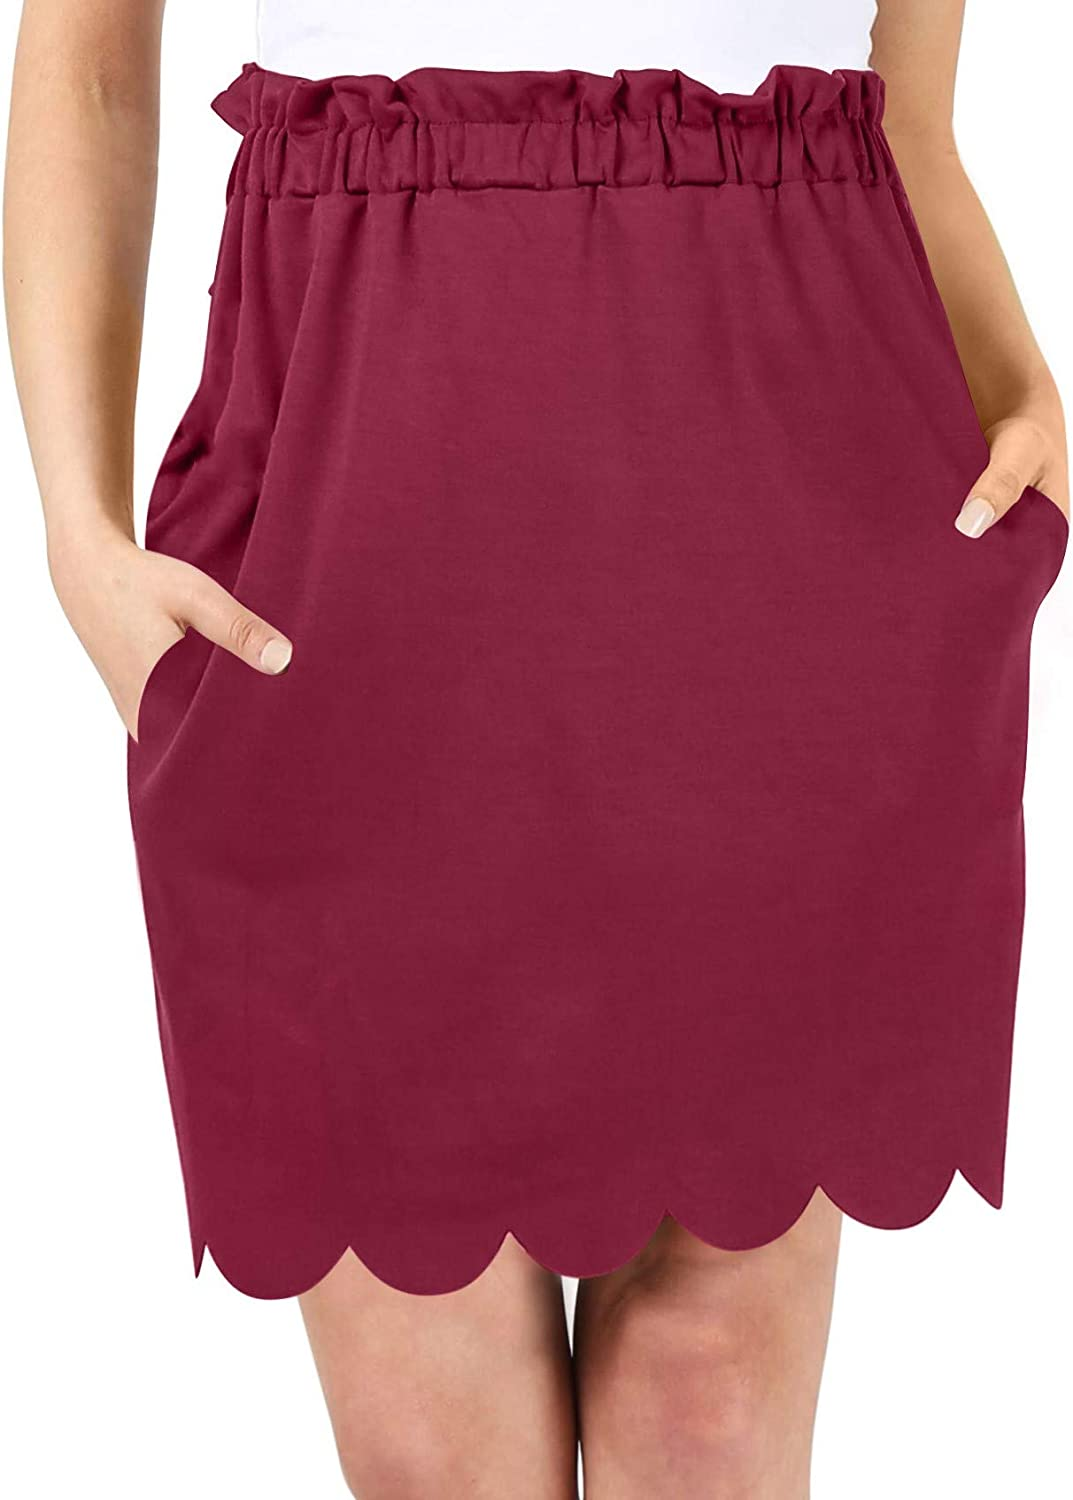 High Waisted Above The Knee Scalloped Pencil Skirt for Women with Side Pockets  Made in USA